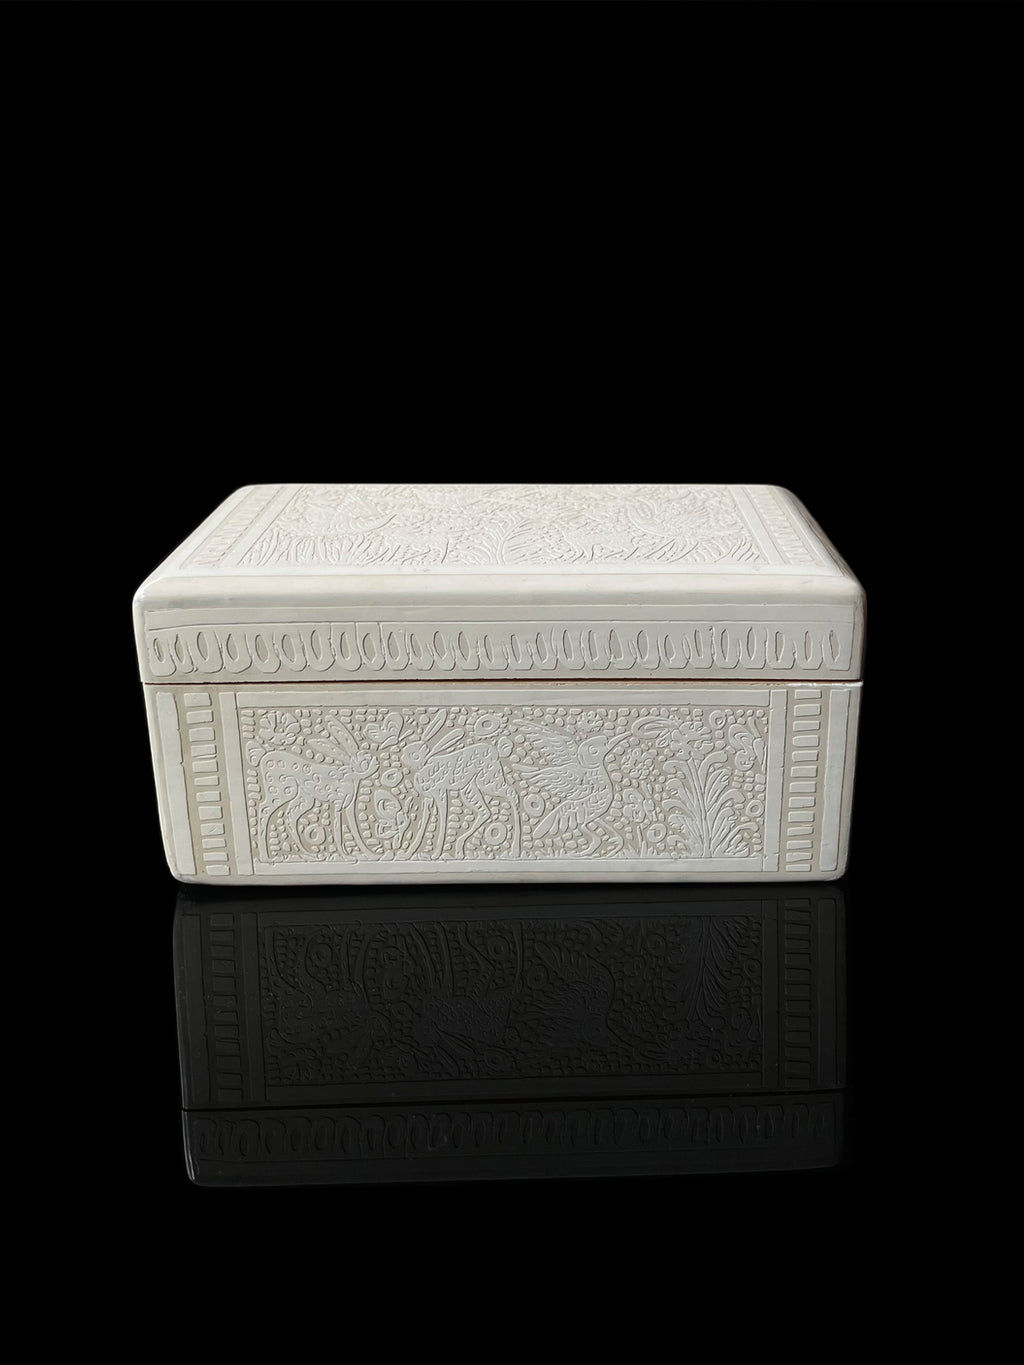 White Engraved Lacquer Wood Box